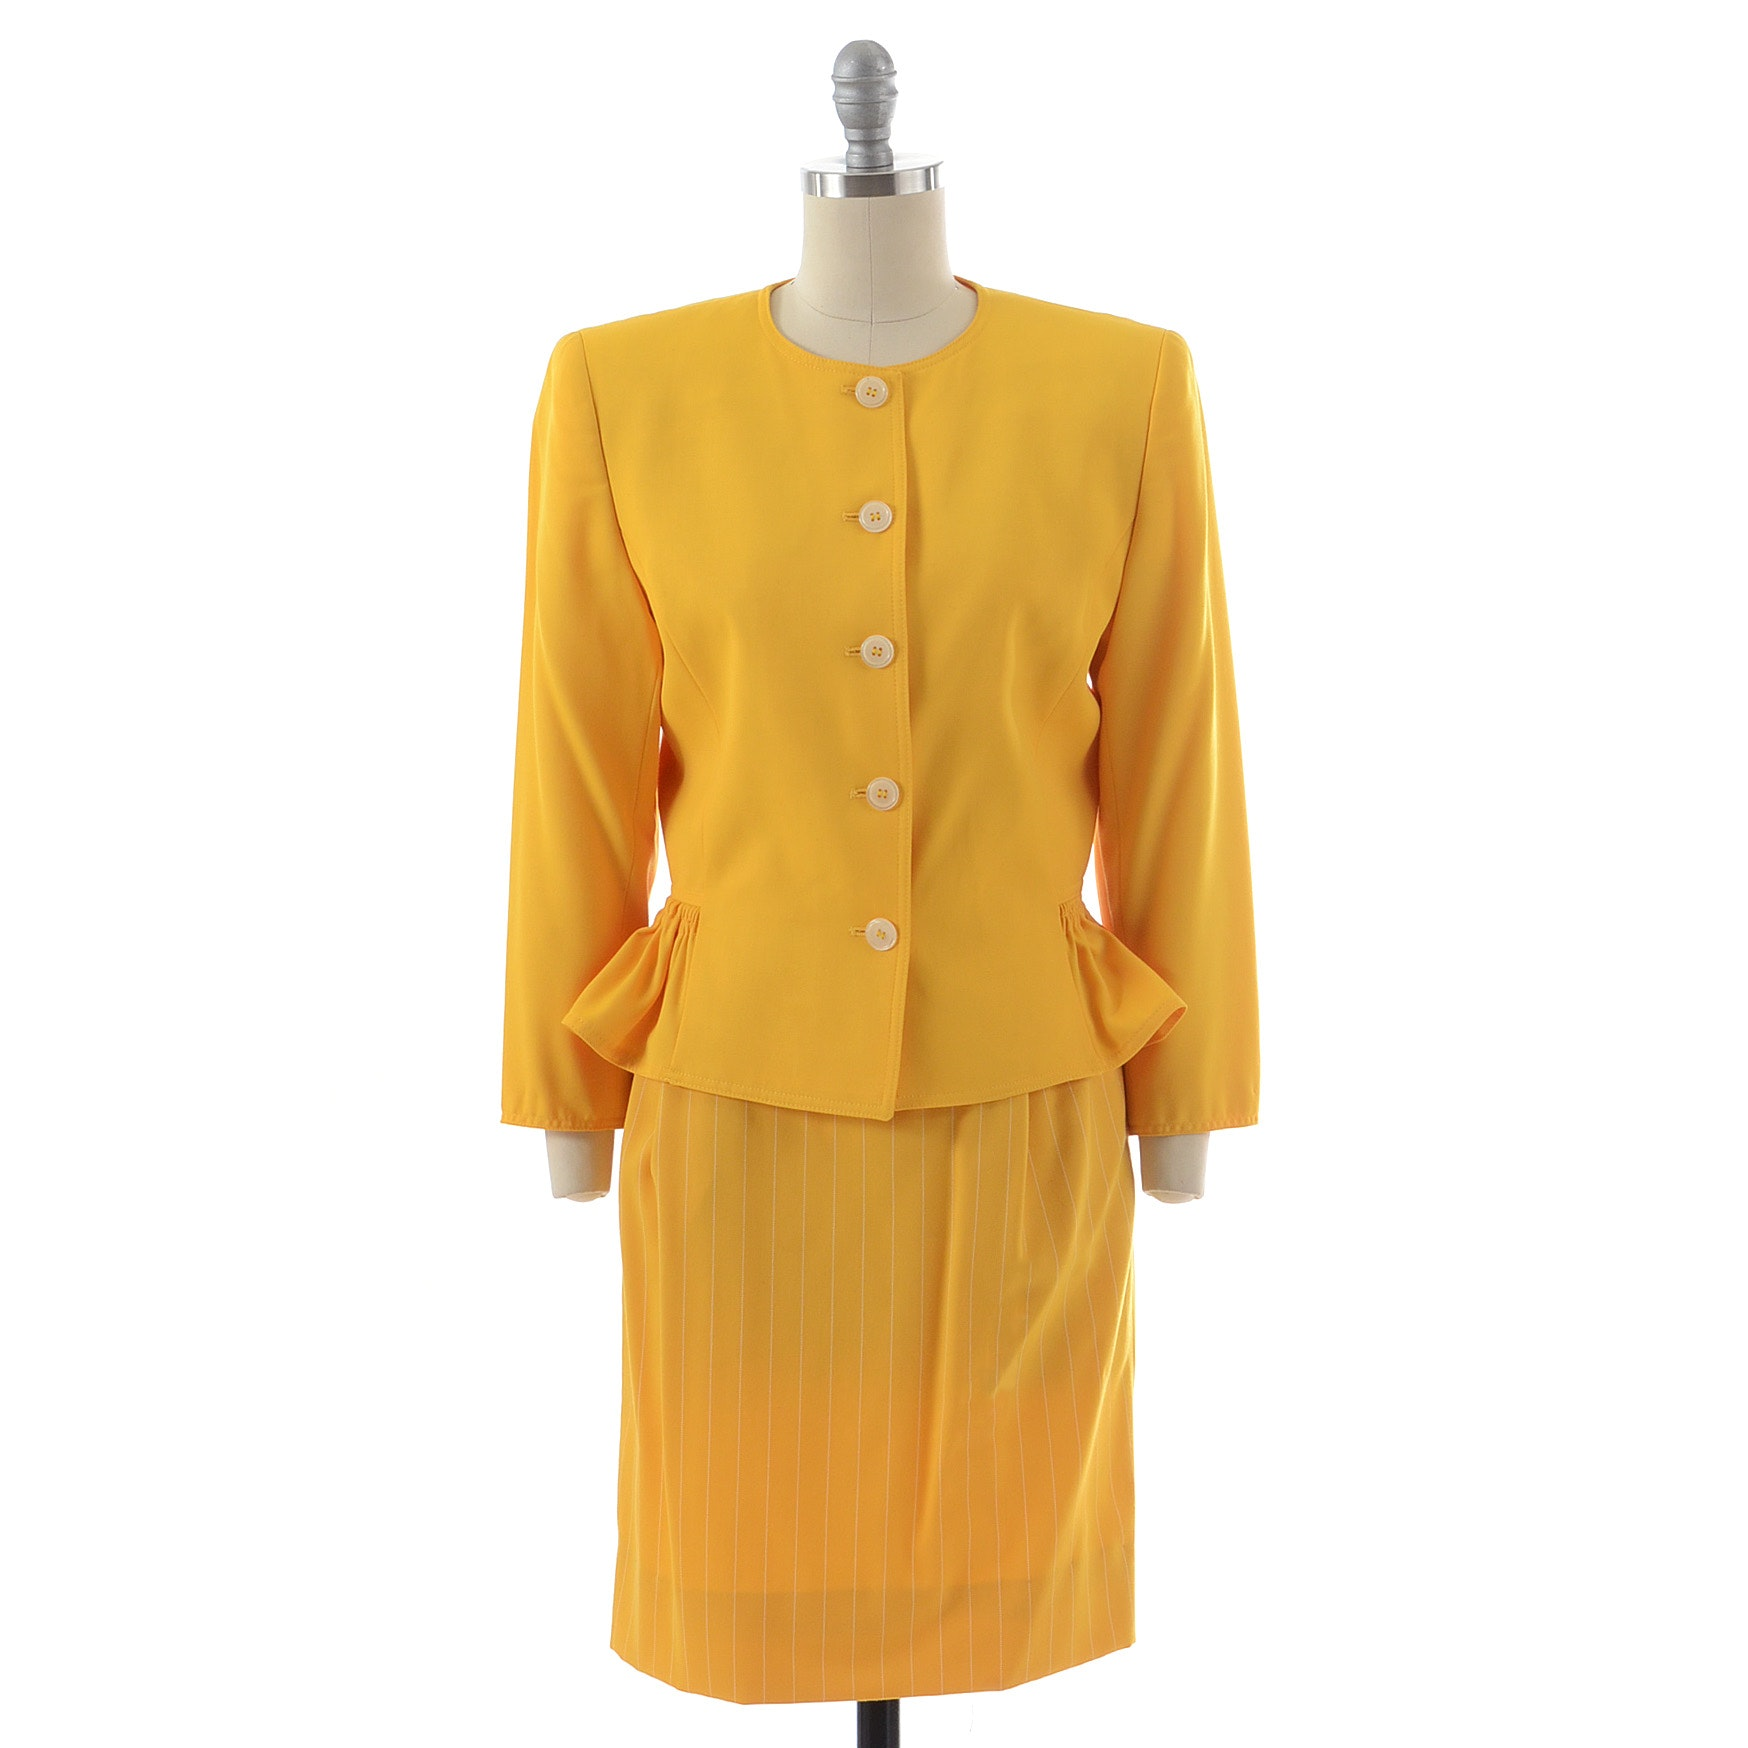 """1980s Valentino Miss V Sunny Yellow Wool Button Front Ruched Jacket Paired with an Emanuelle Ungaro Solo Donna of Paris Yellow Gabardine Wool Pin Stripe Skirt with """"ERICA, FEB.16, 1988"""" on the Label"""